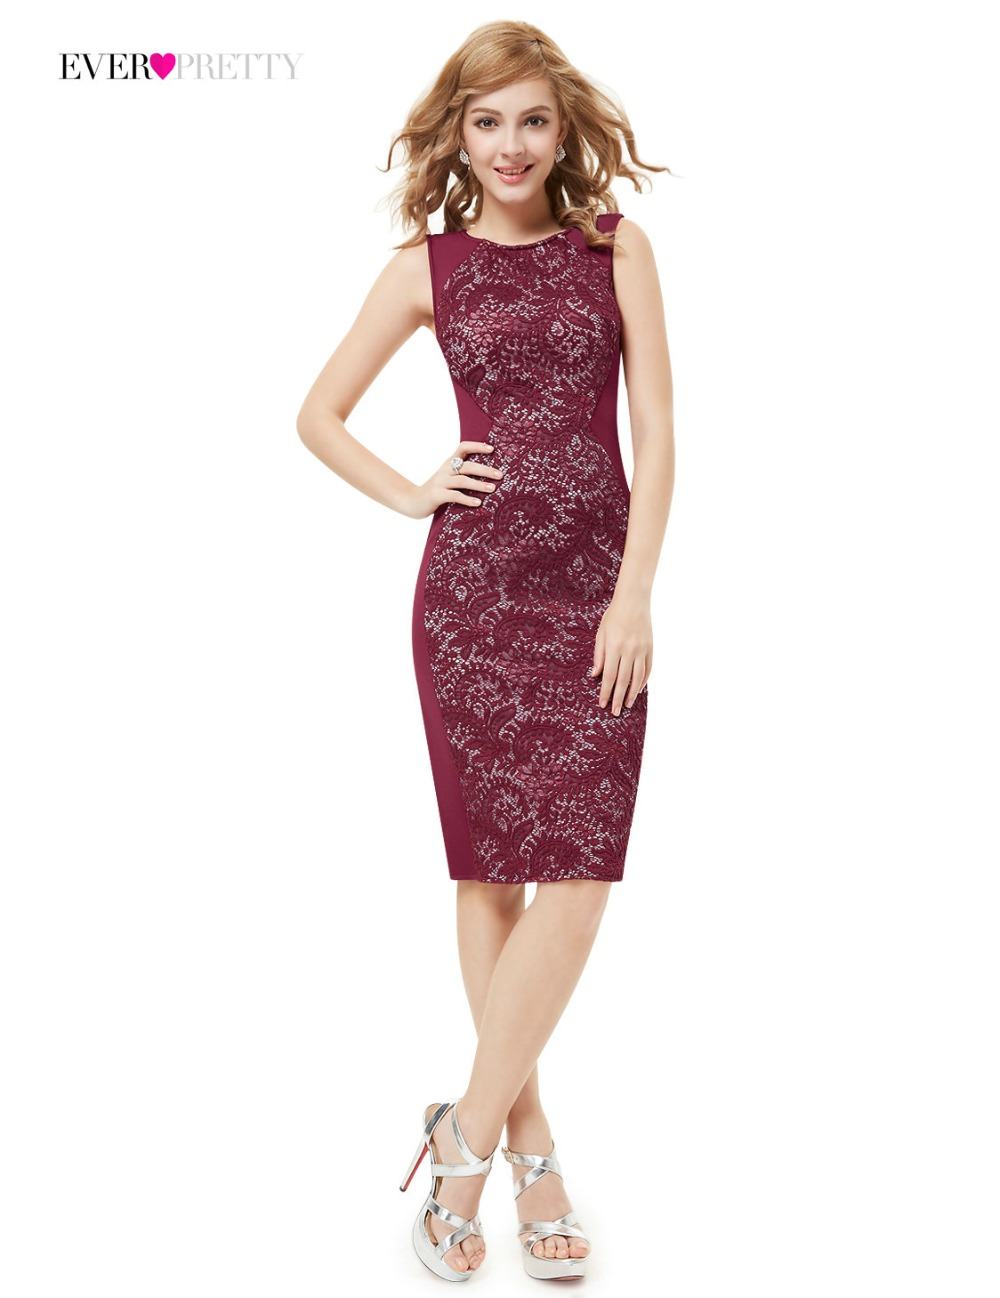 [Clearance Sale] Cocktail Dresses HE05336 Lace Elegant Vintage Hot Sale Modern Sleeveless Straight Cocktail Dress for Women